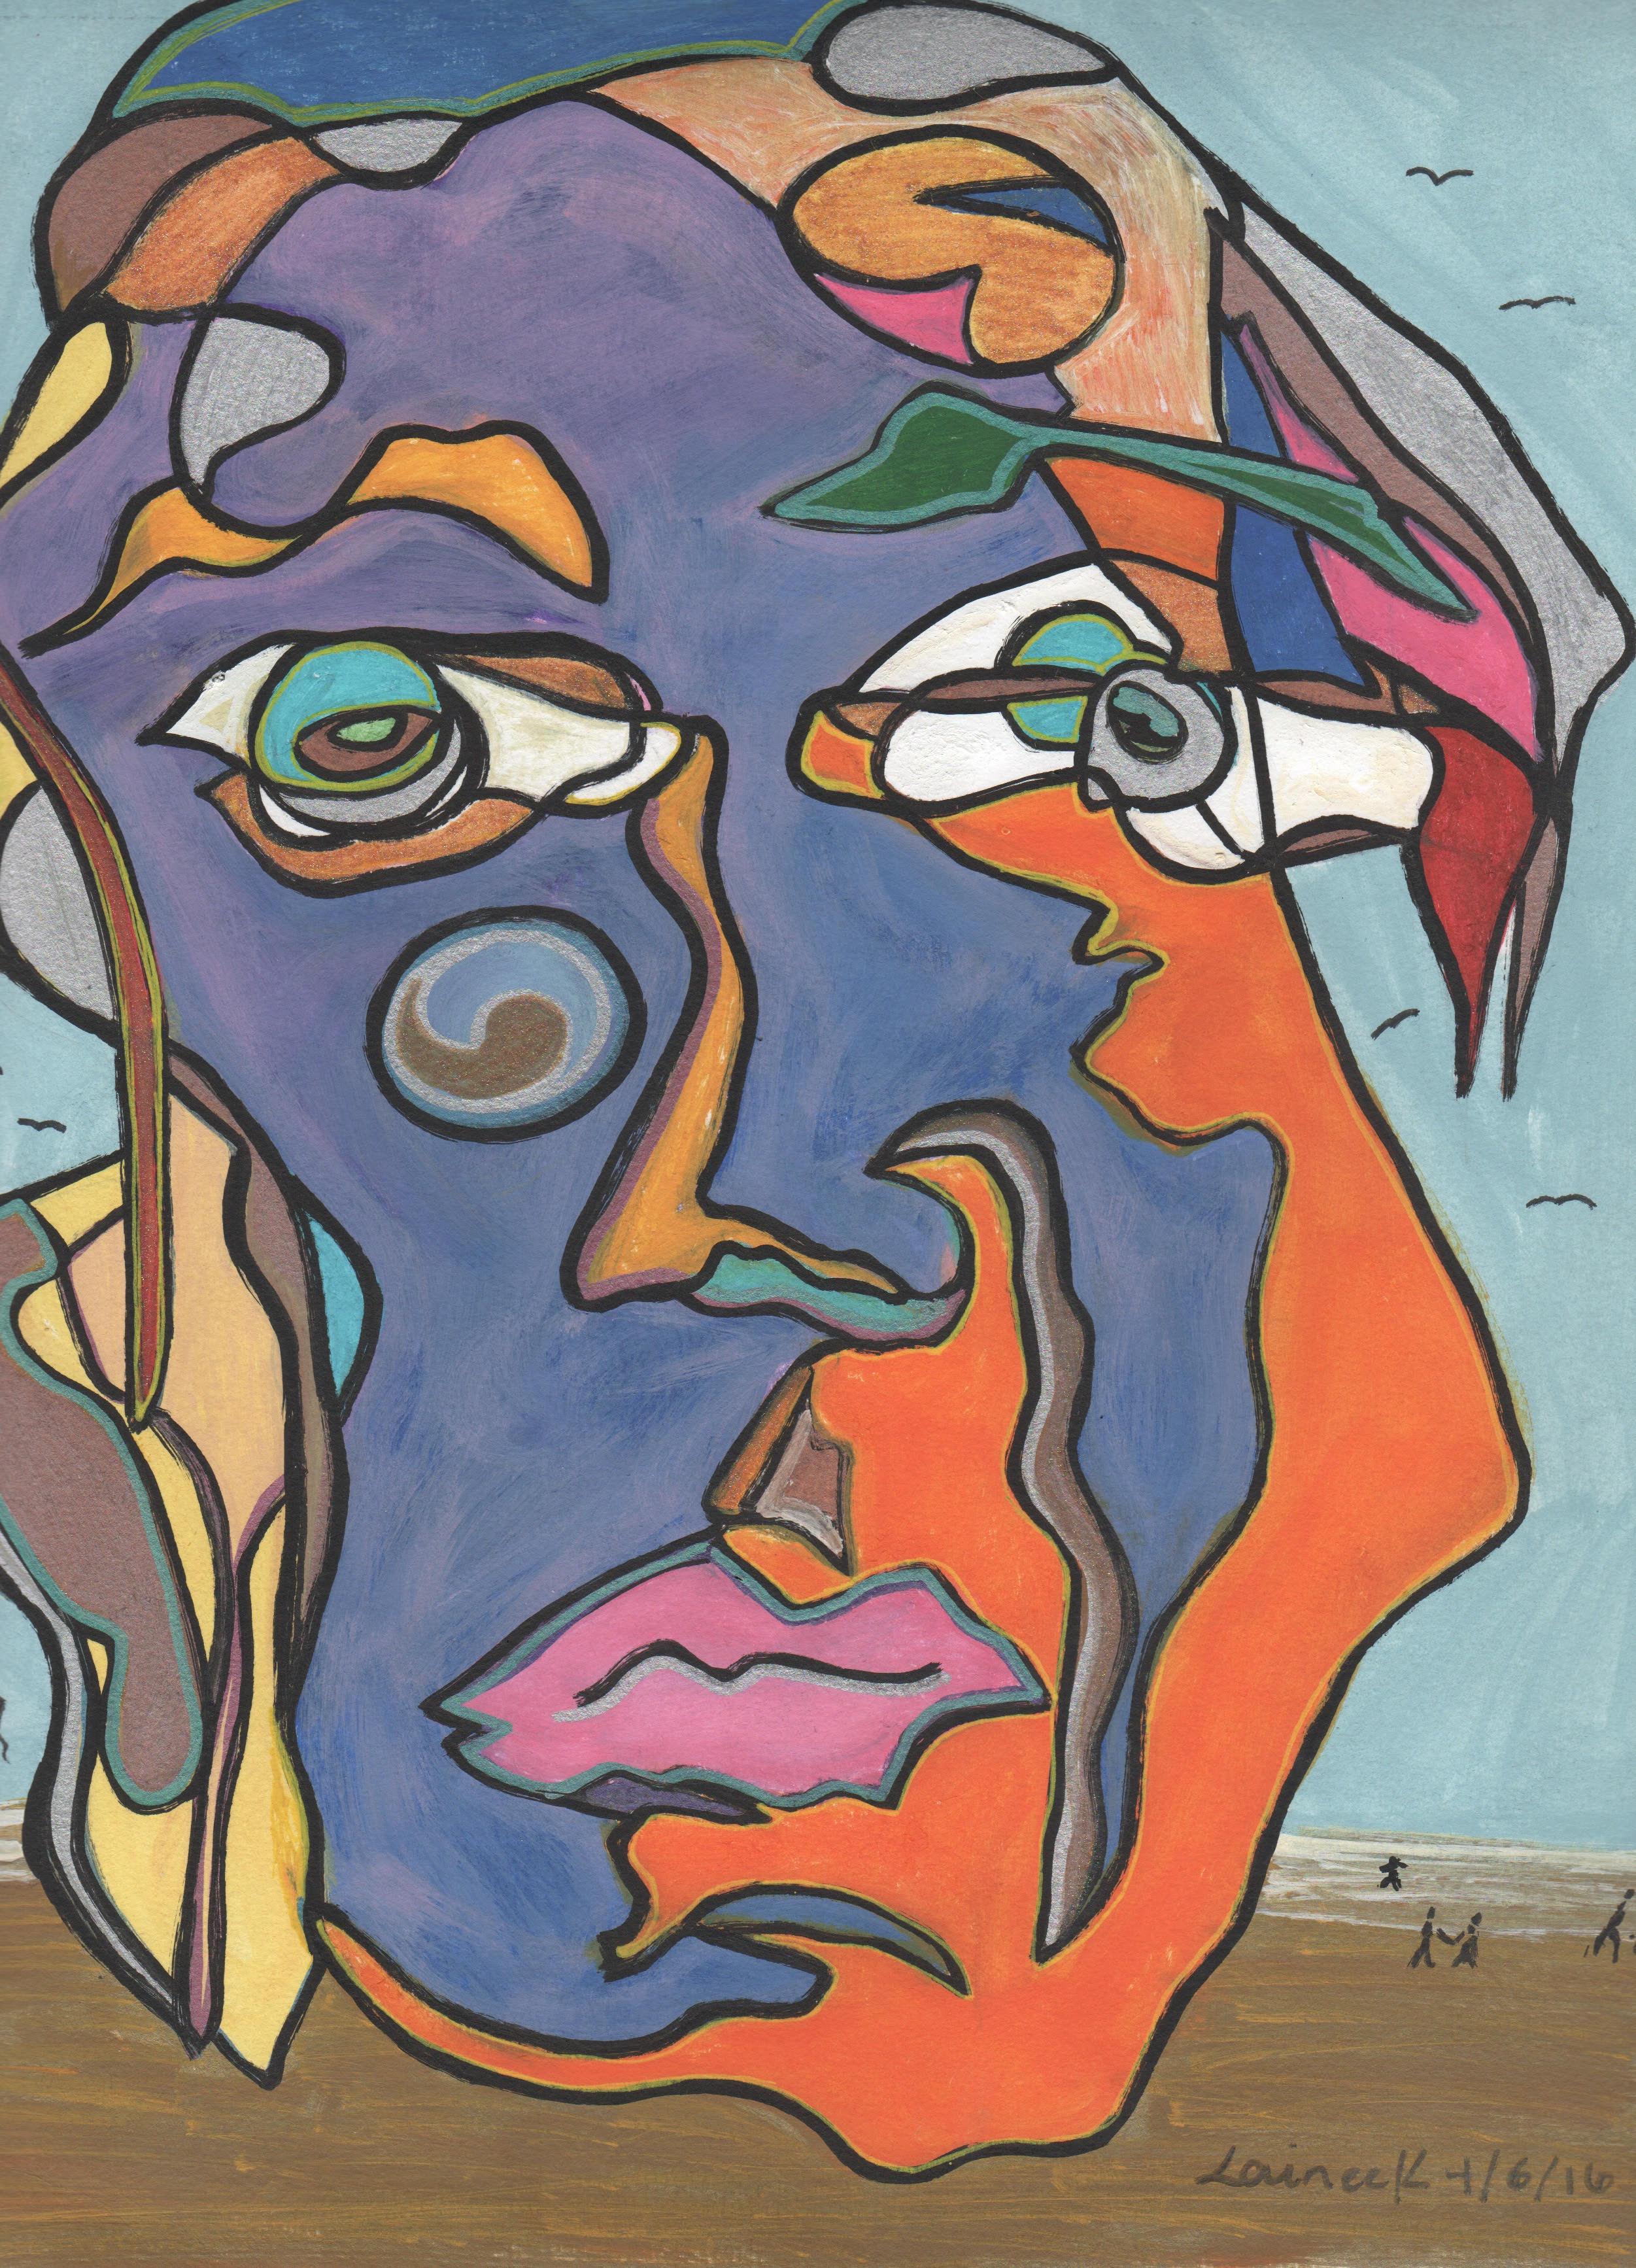 An abstract painting of a colorful face.